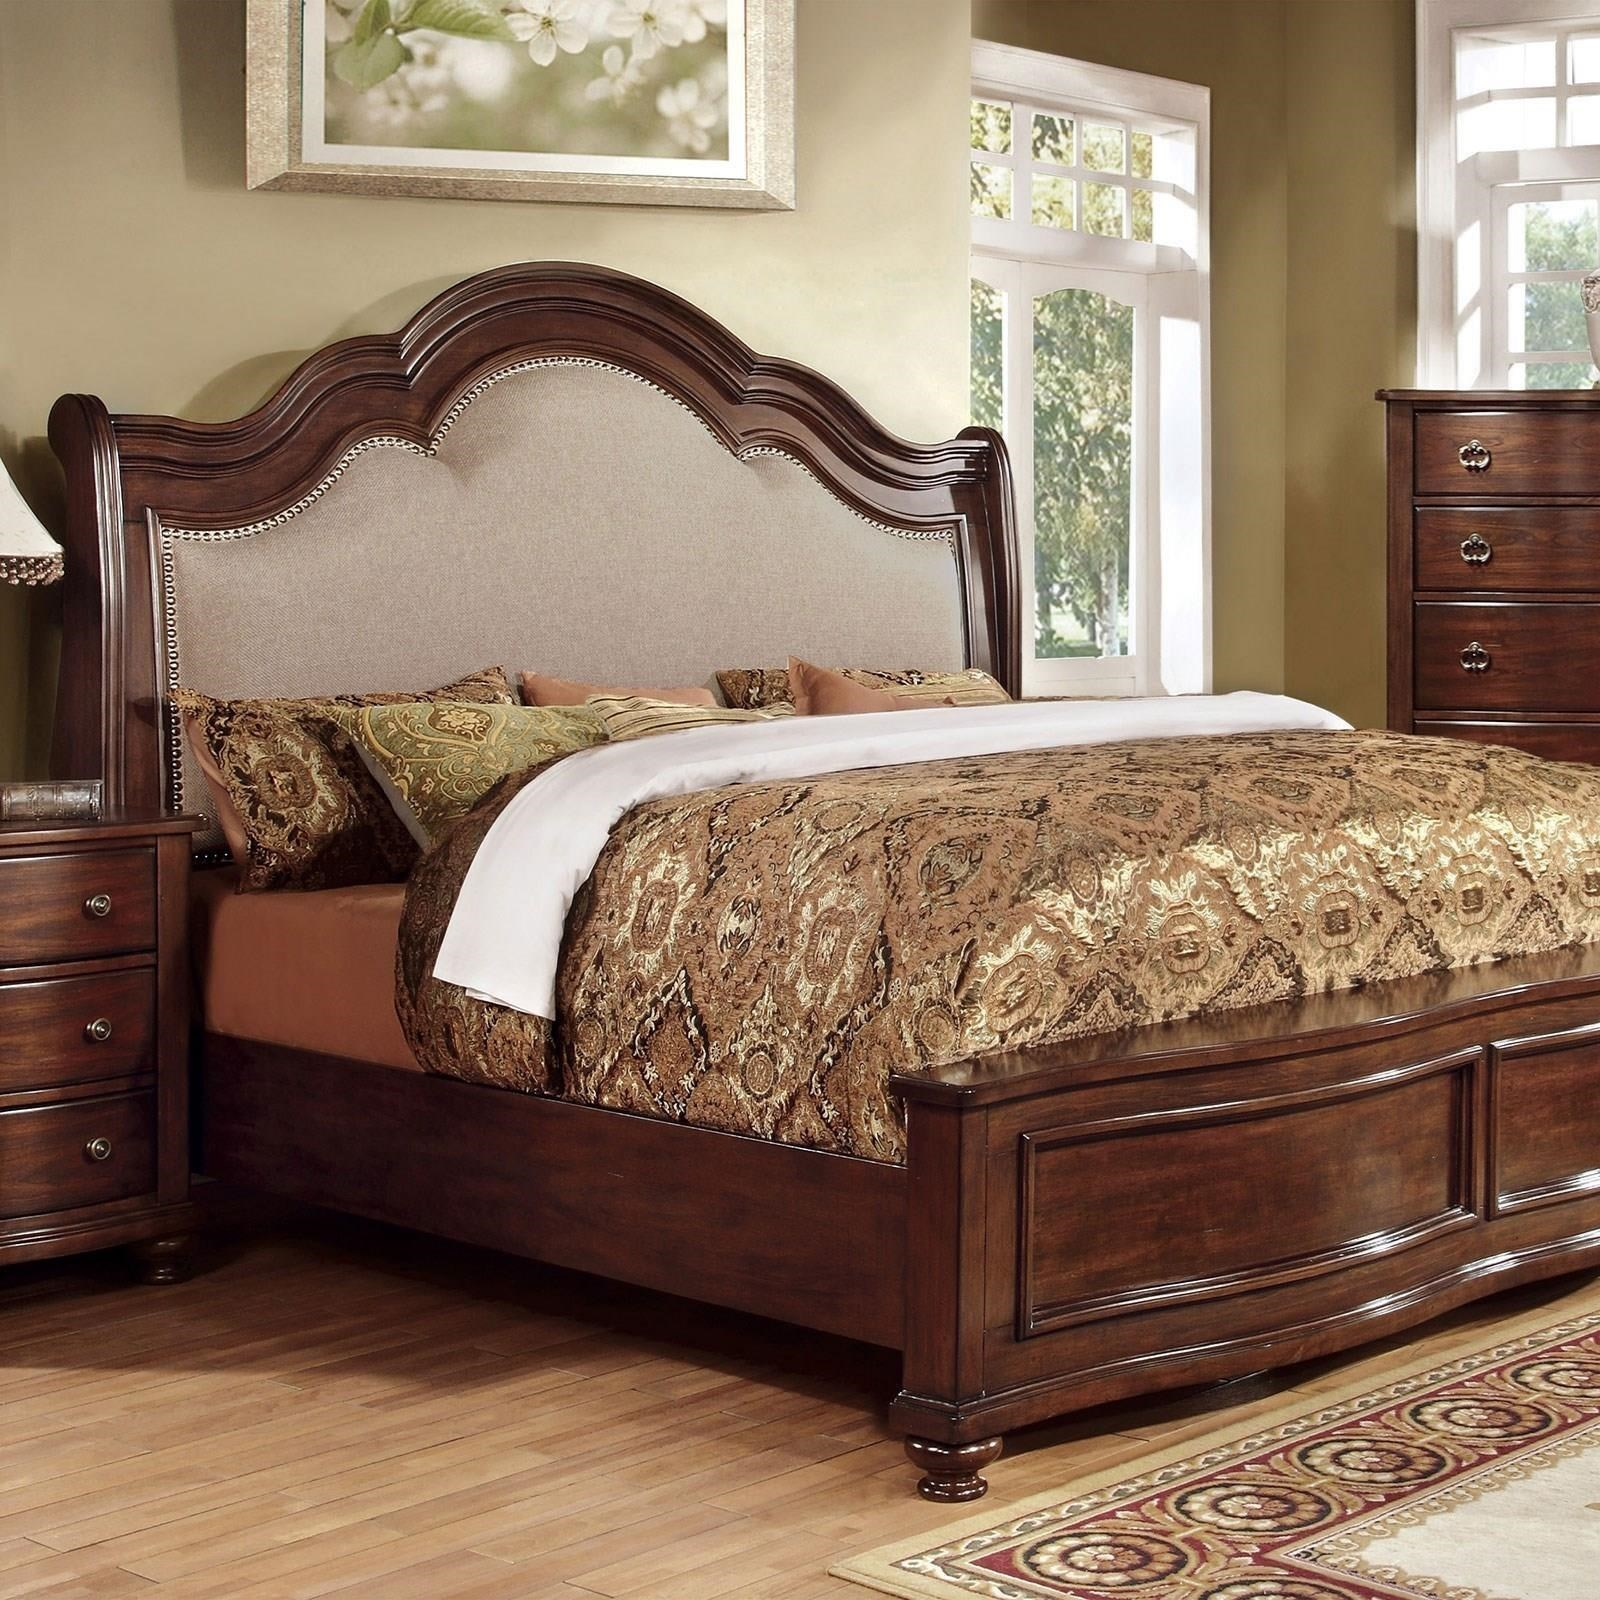 Furniture Of America Bellavista California King Bed Dream Home Interiors Upholstered Beds